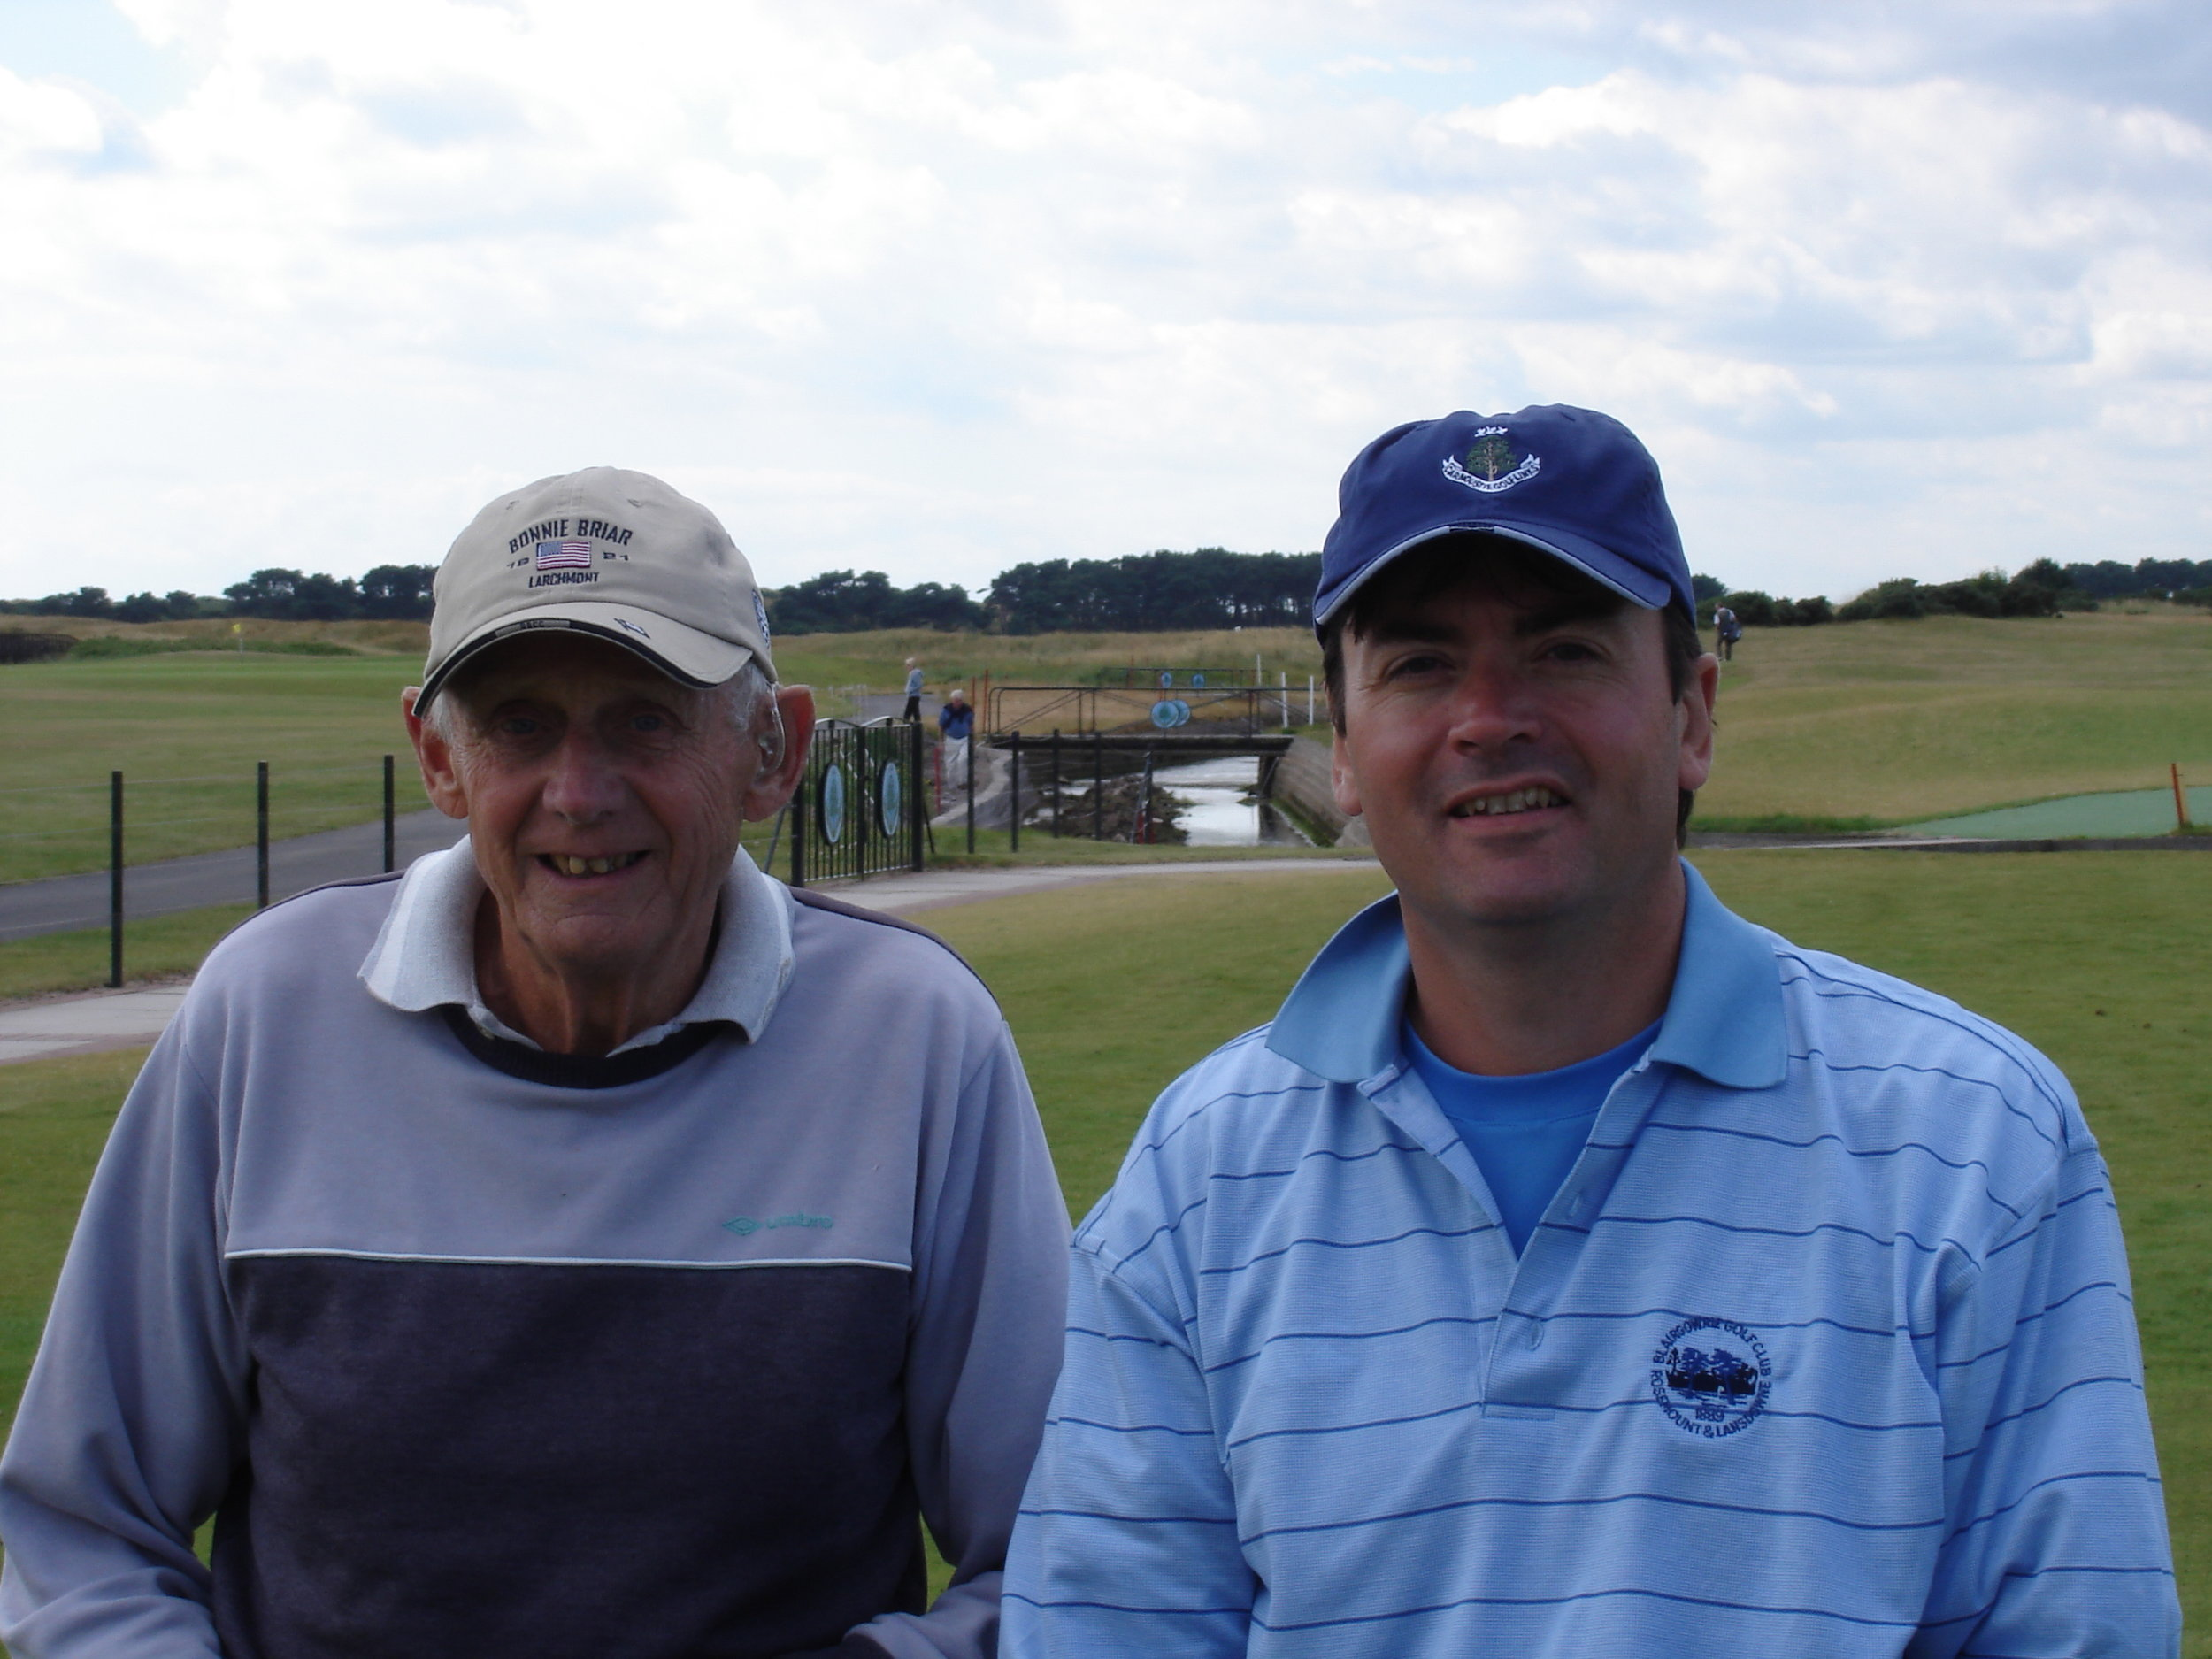 My father in law Christopher and me about to tee off. I played horribly but we had a great time.